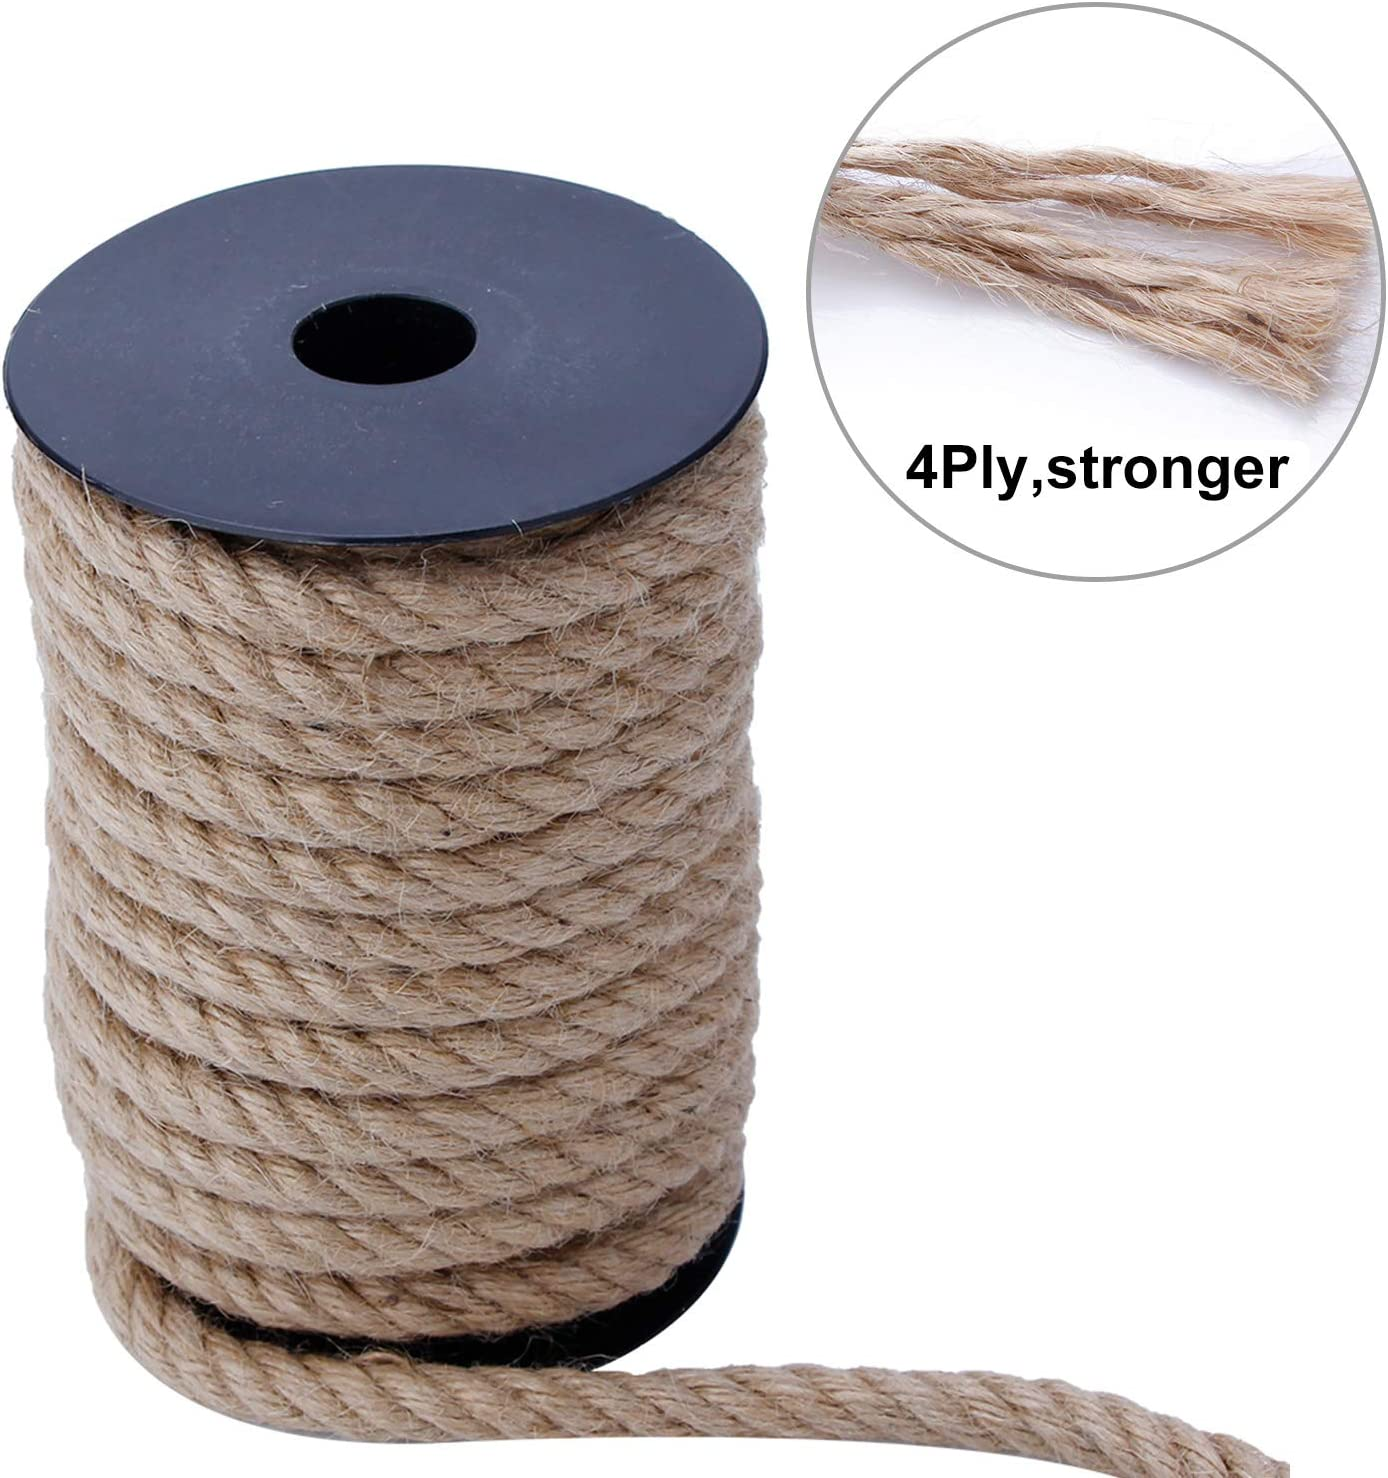 Bundling and Crafts Natural Heavy Duty Industrial Packing Jute Twine for Gardening Recycling Bang4buck Strong Jute Rope 10mm 4Ply 33 Feet